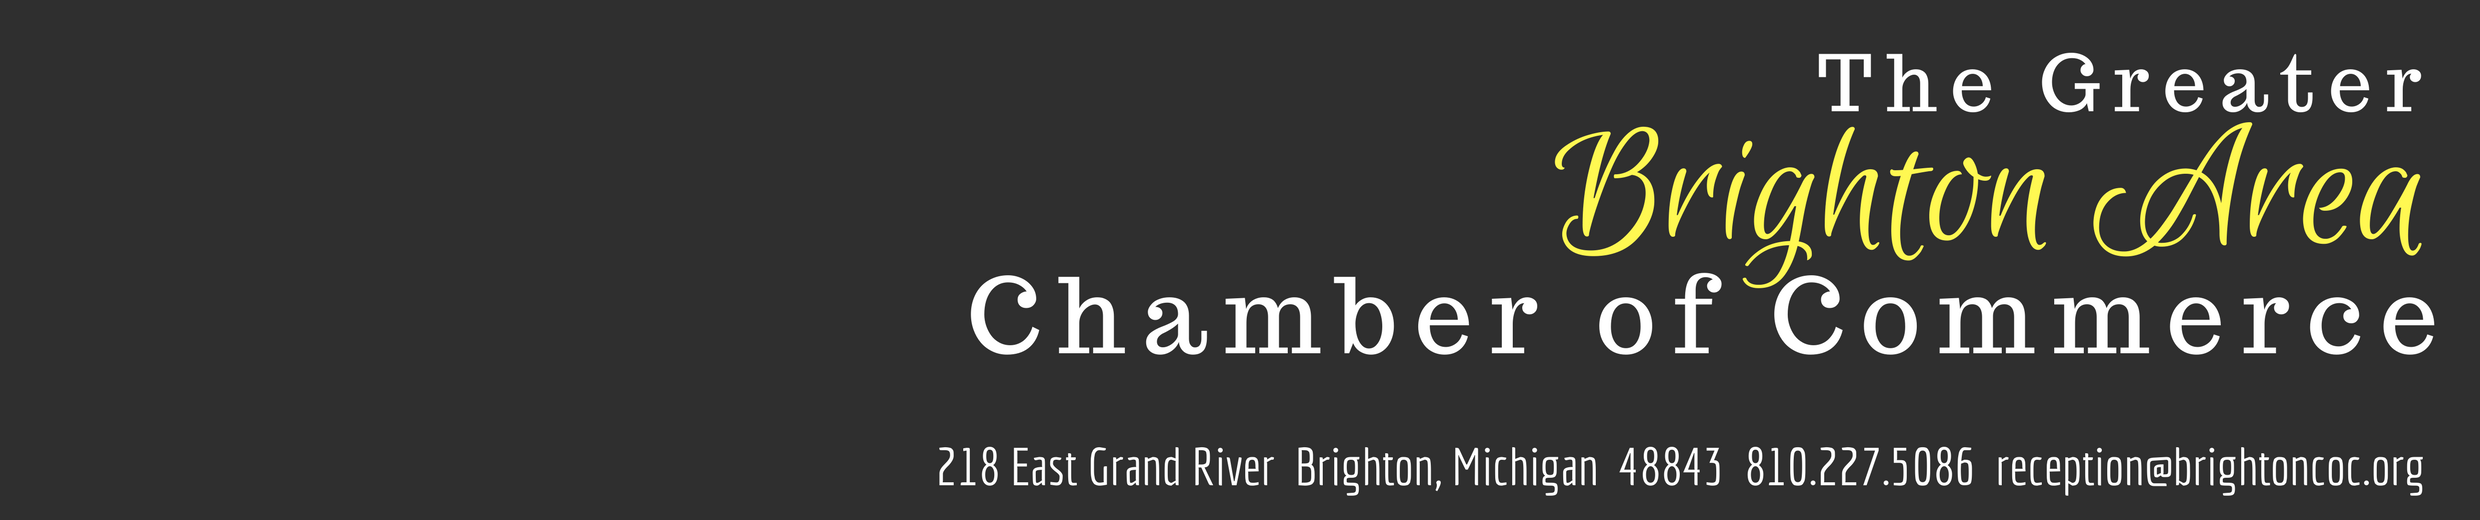 Greater-Brighton-Area-Chamber-of-9.png